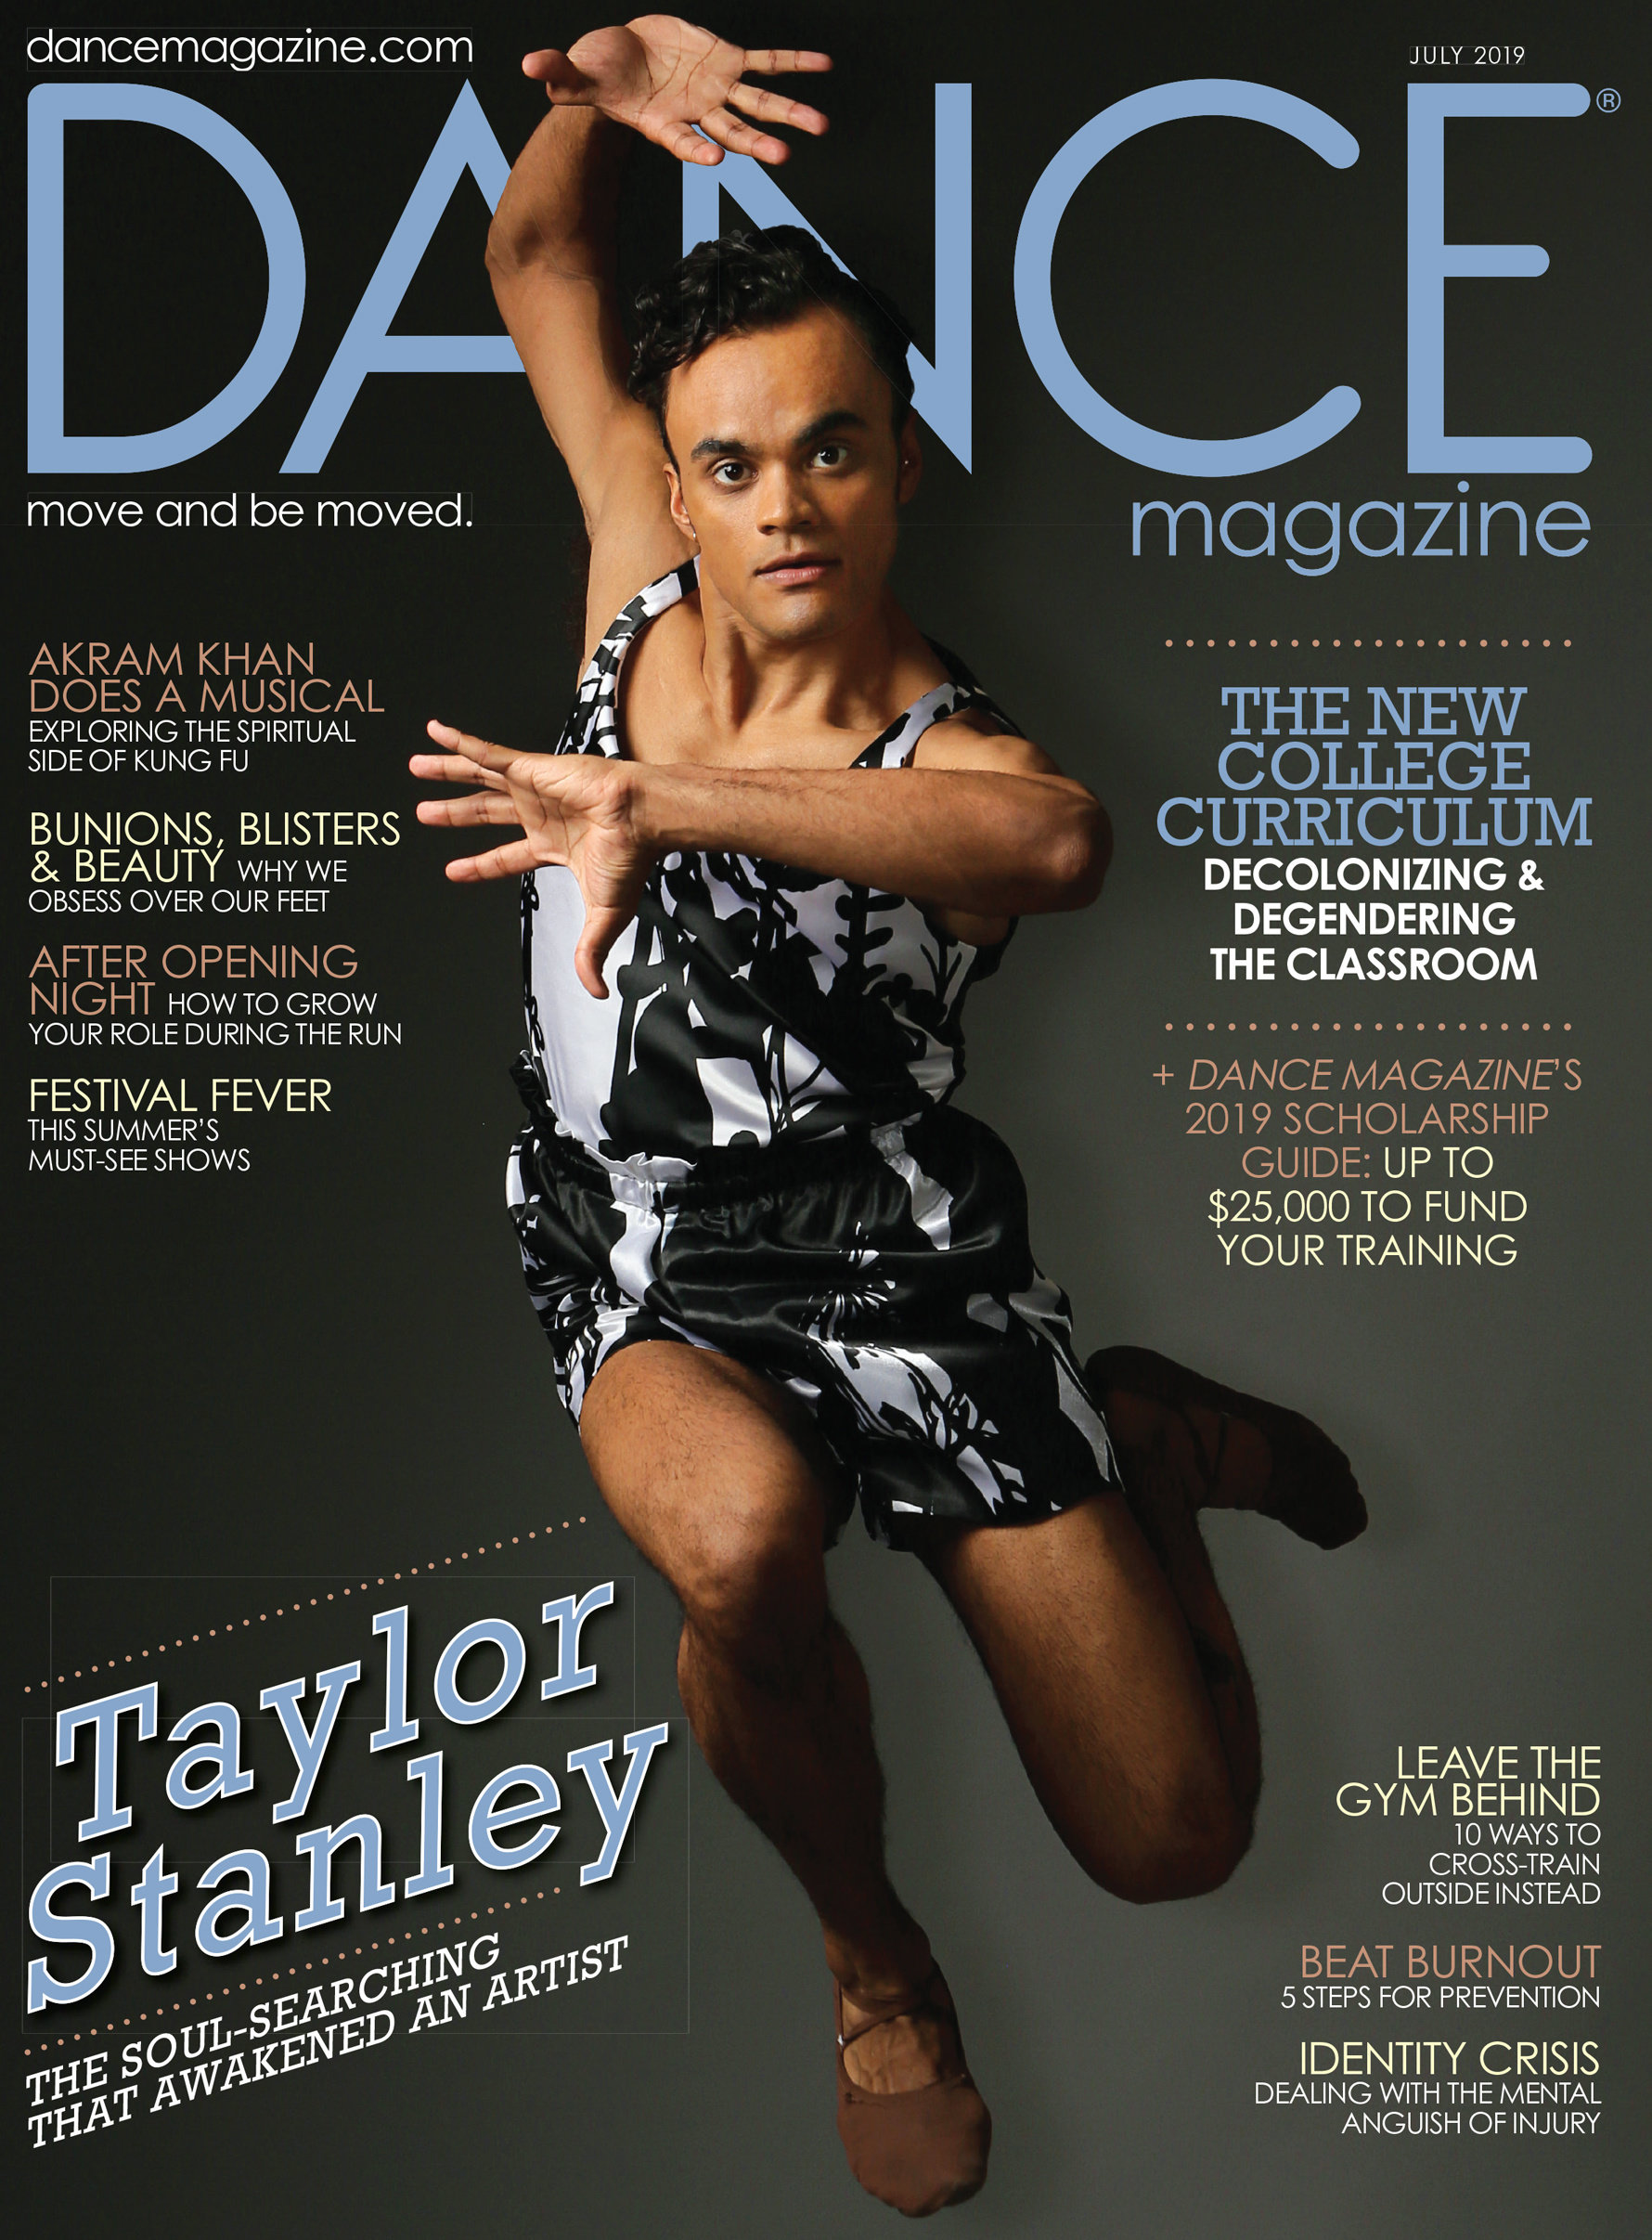 338891c6a6e2c Dance Magazine - Editors' List: The Goods